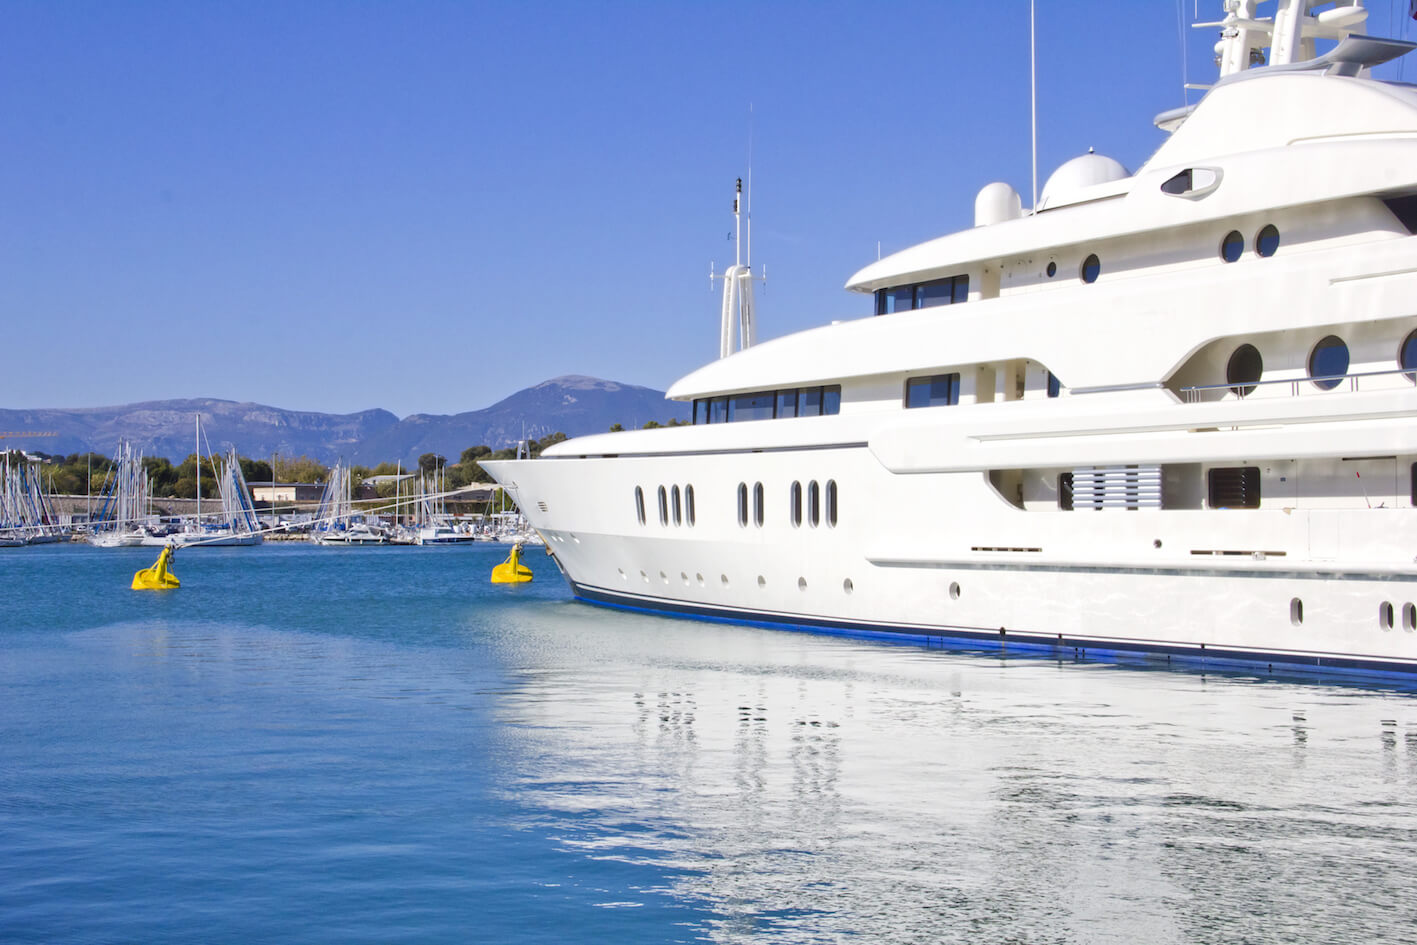 Tips to find work on a Superyacht